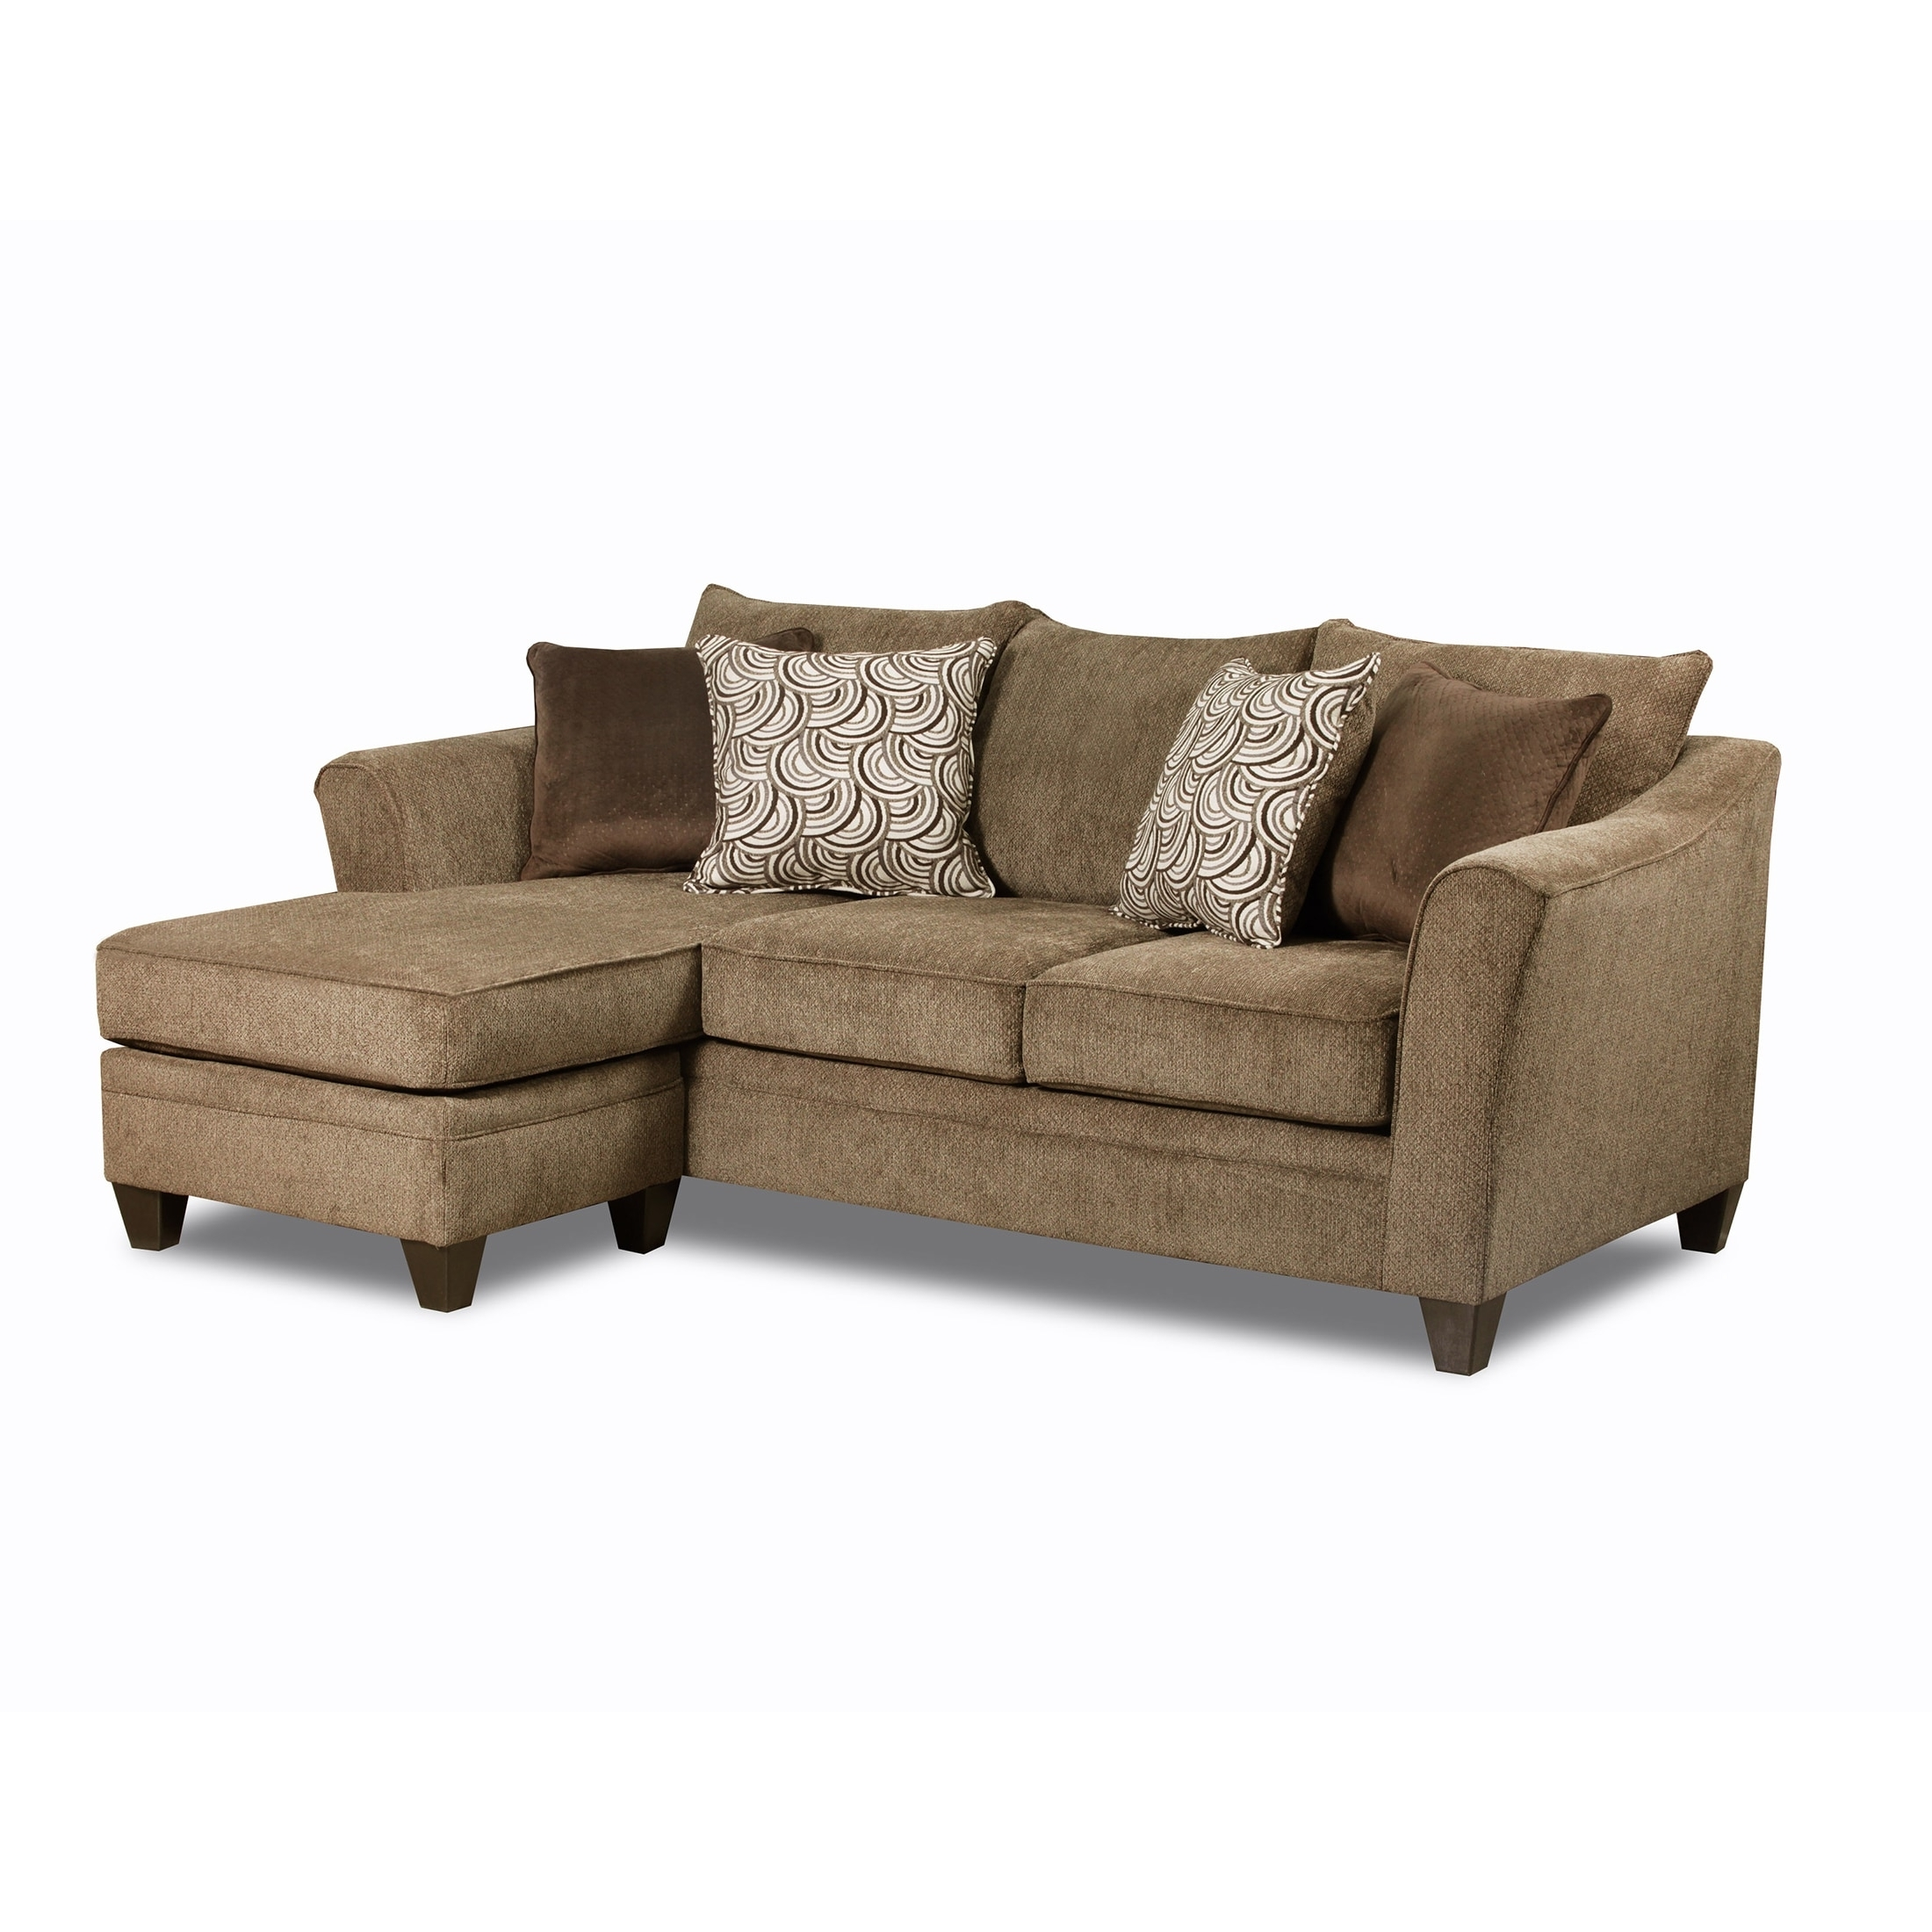 2019 Simmons Chaise Sofas Throughout Simmons Upholstery Albany Truffle Sofa Chaise – Free Shipping (View 3 of 20)